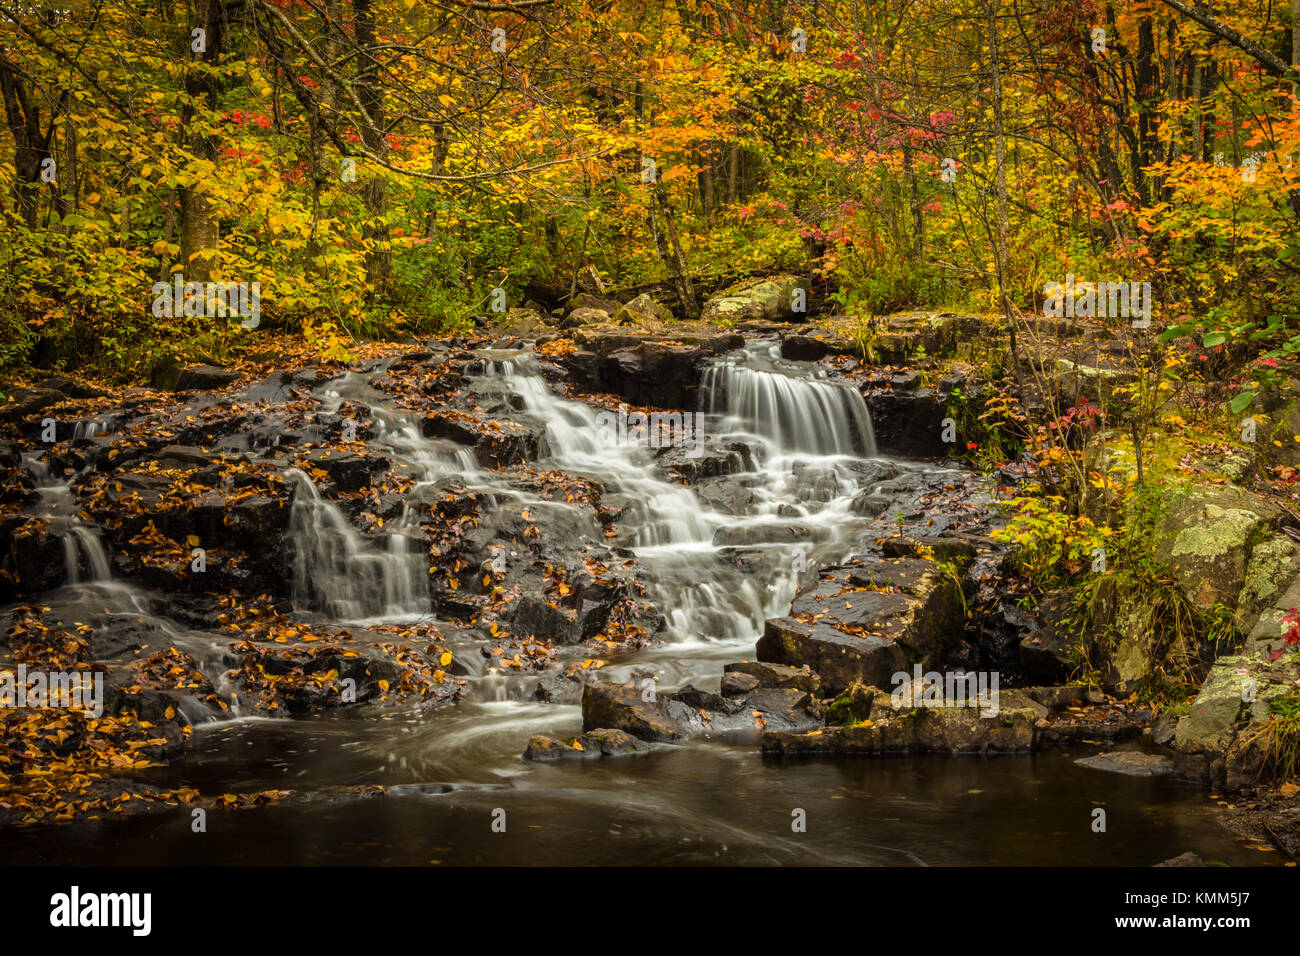 Small waterfalls in the fall 2 - Stock Image